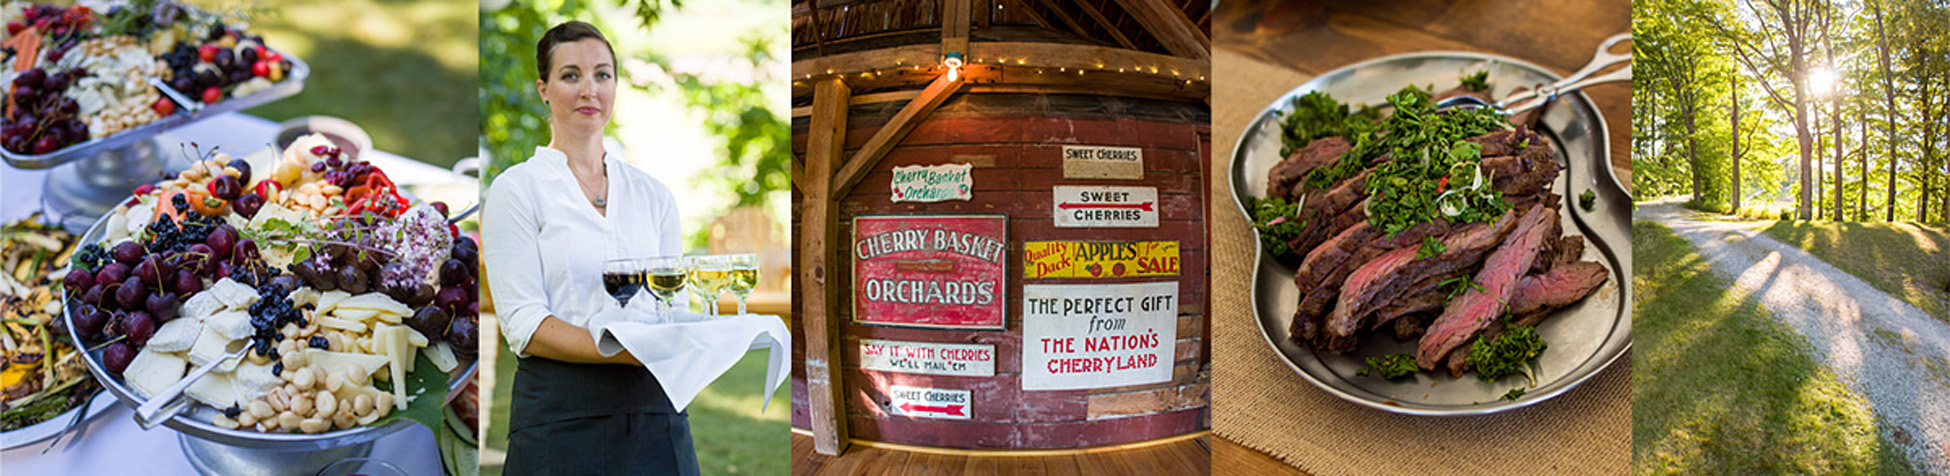 Cherry Basket Farm by wedding Photographer Thomas Kachadurian